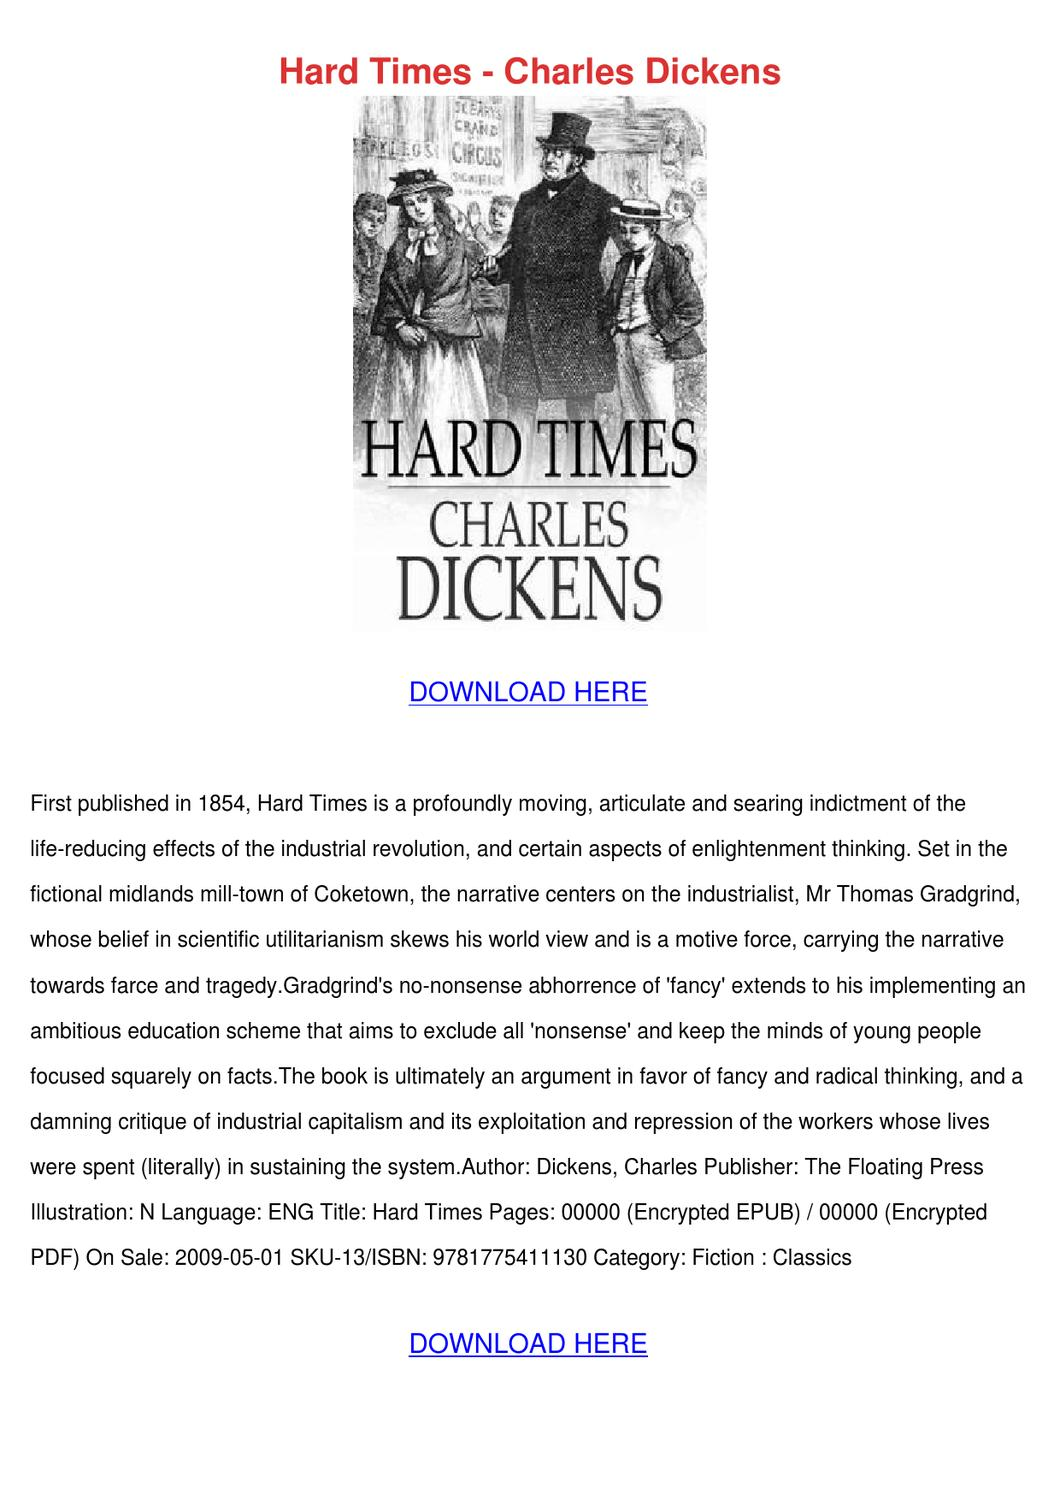 the impact of the industrial revolution on charles dickens hard times Articles tagged with 'charles dickens helen jones charles dicken's tenth novel, hard times it was a polemic against the impact of the industrial revolution.